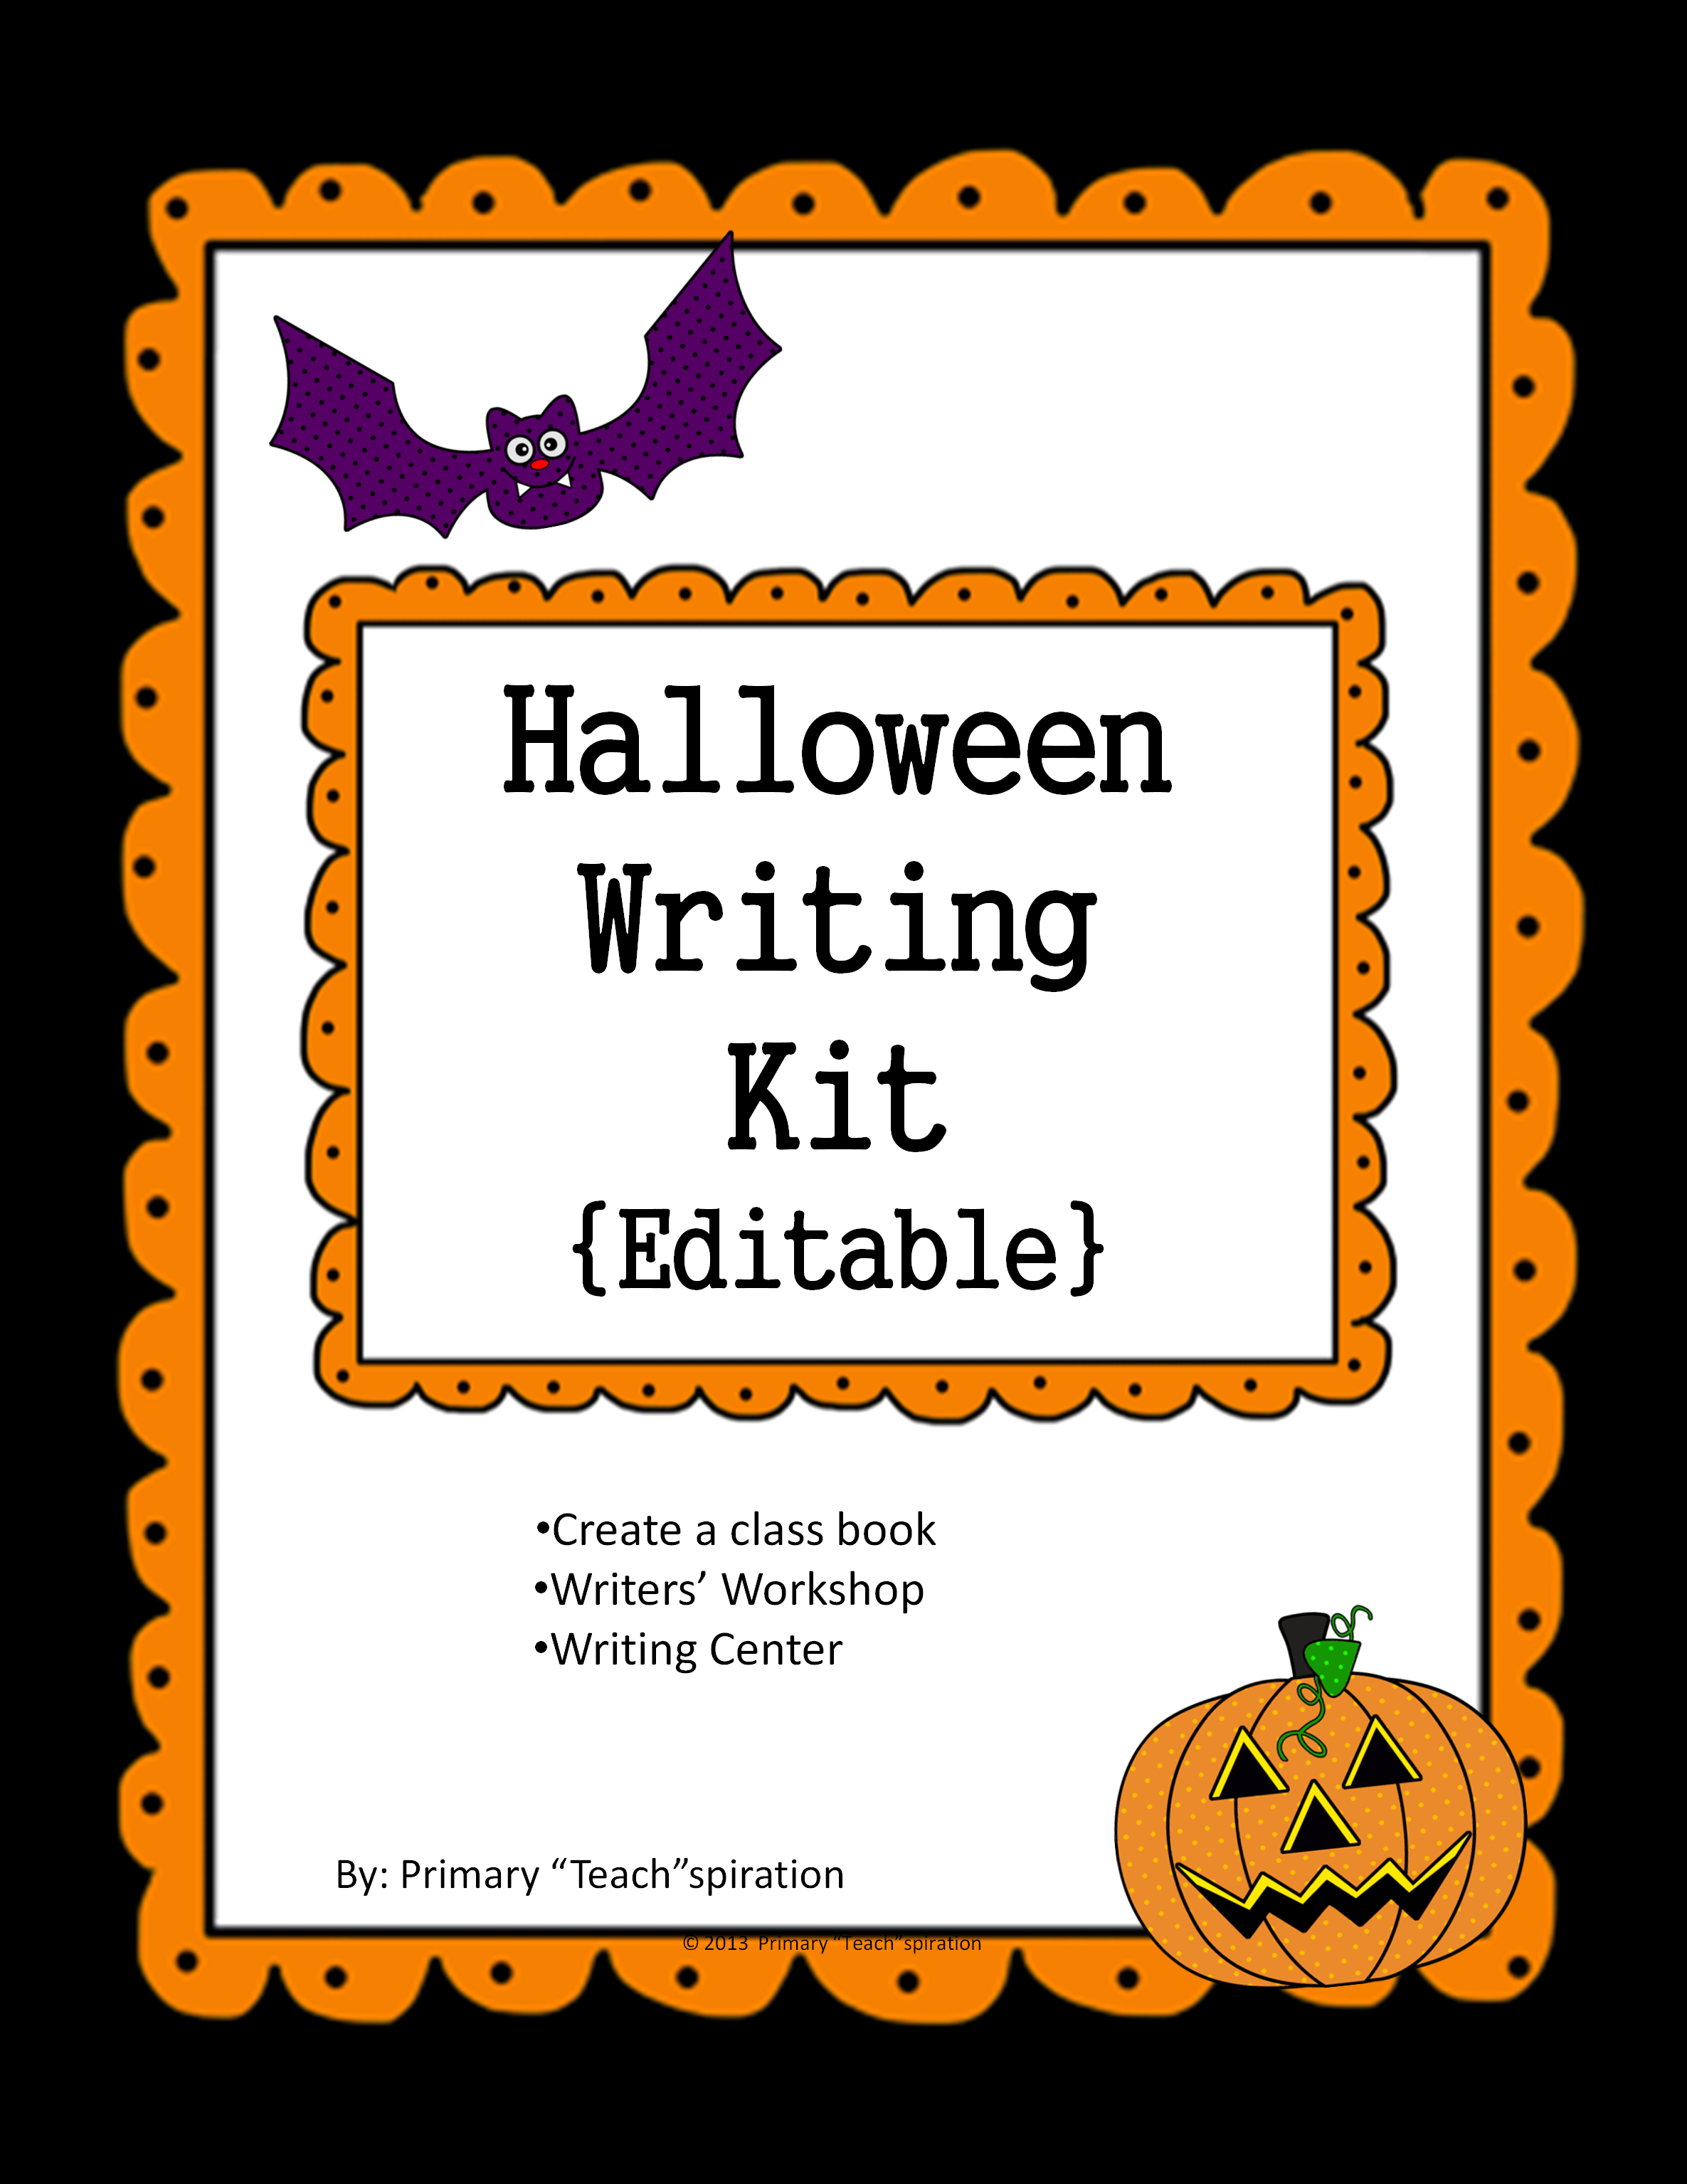 Your students will absolutely love this editable writing kit as they use it during the Halloween season!  Use it to create a class or individual books, use it as part of your Writers' Workshop in the writing process or in your Writing Center with various prompts.  Because it's editable, it can be used over & over again as you change the writing prompts & story titles.